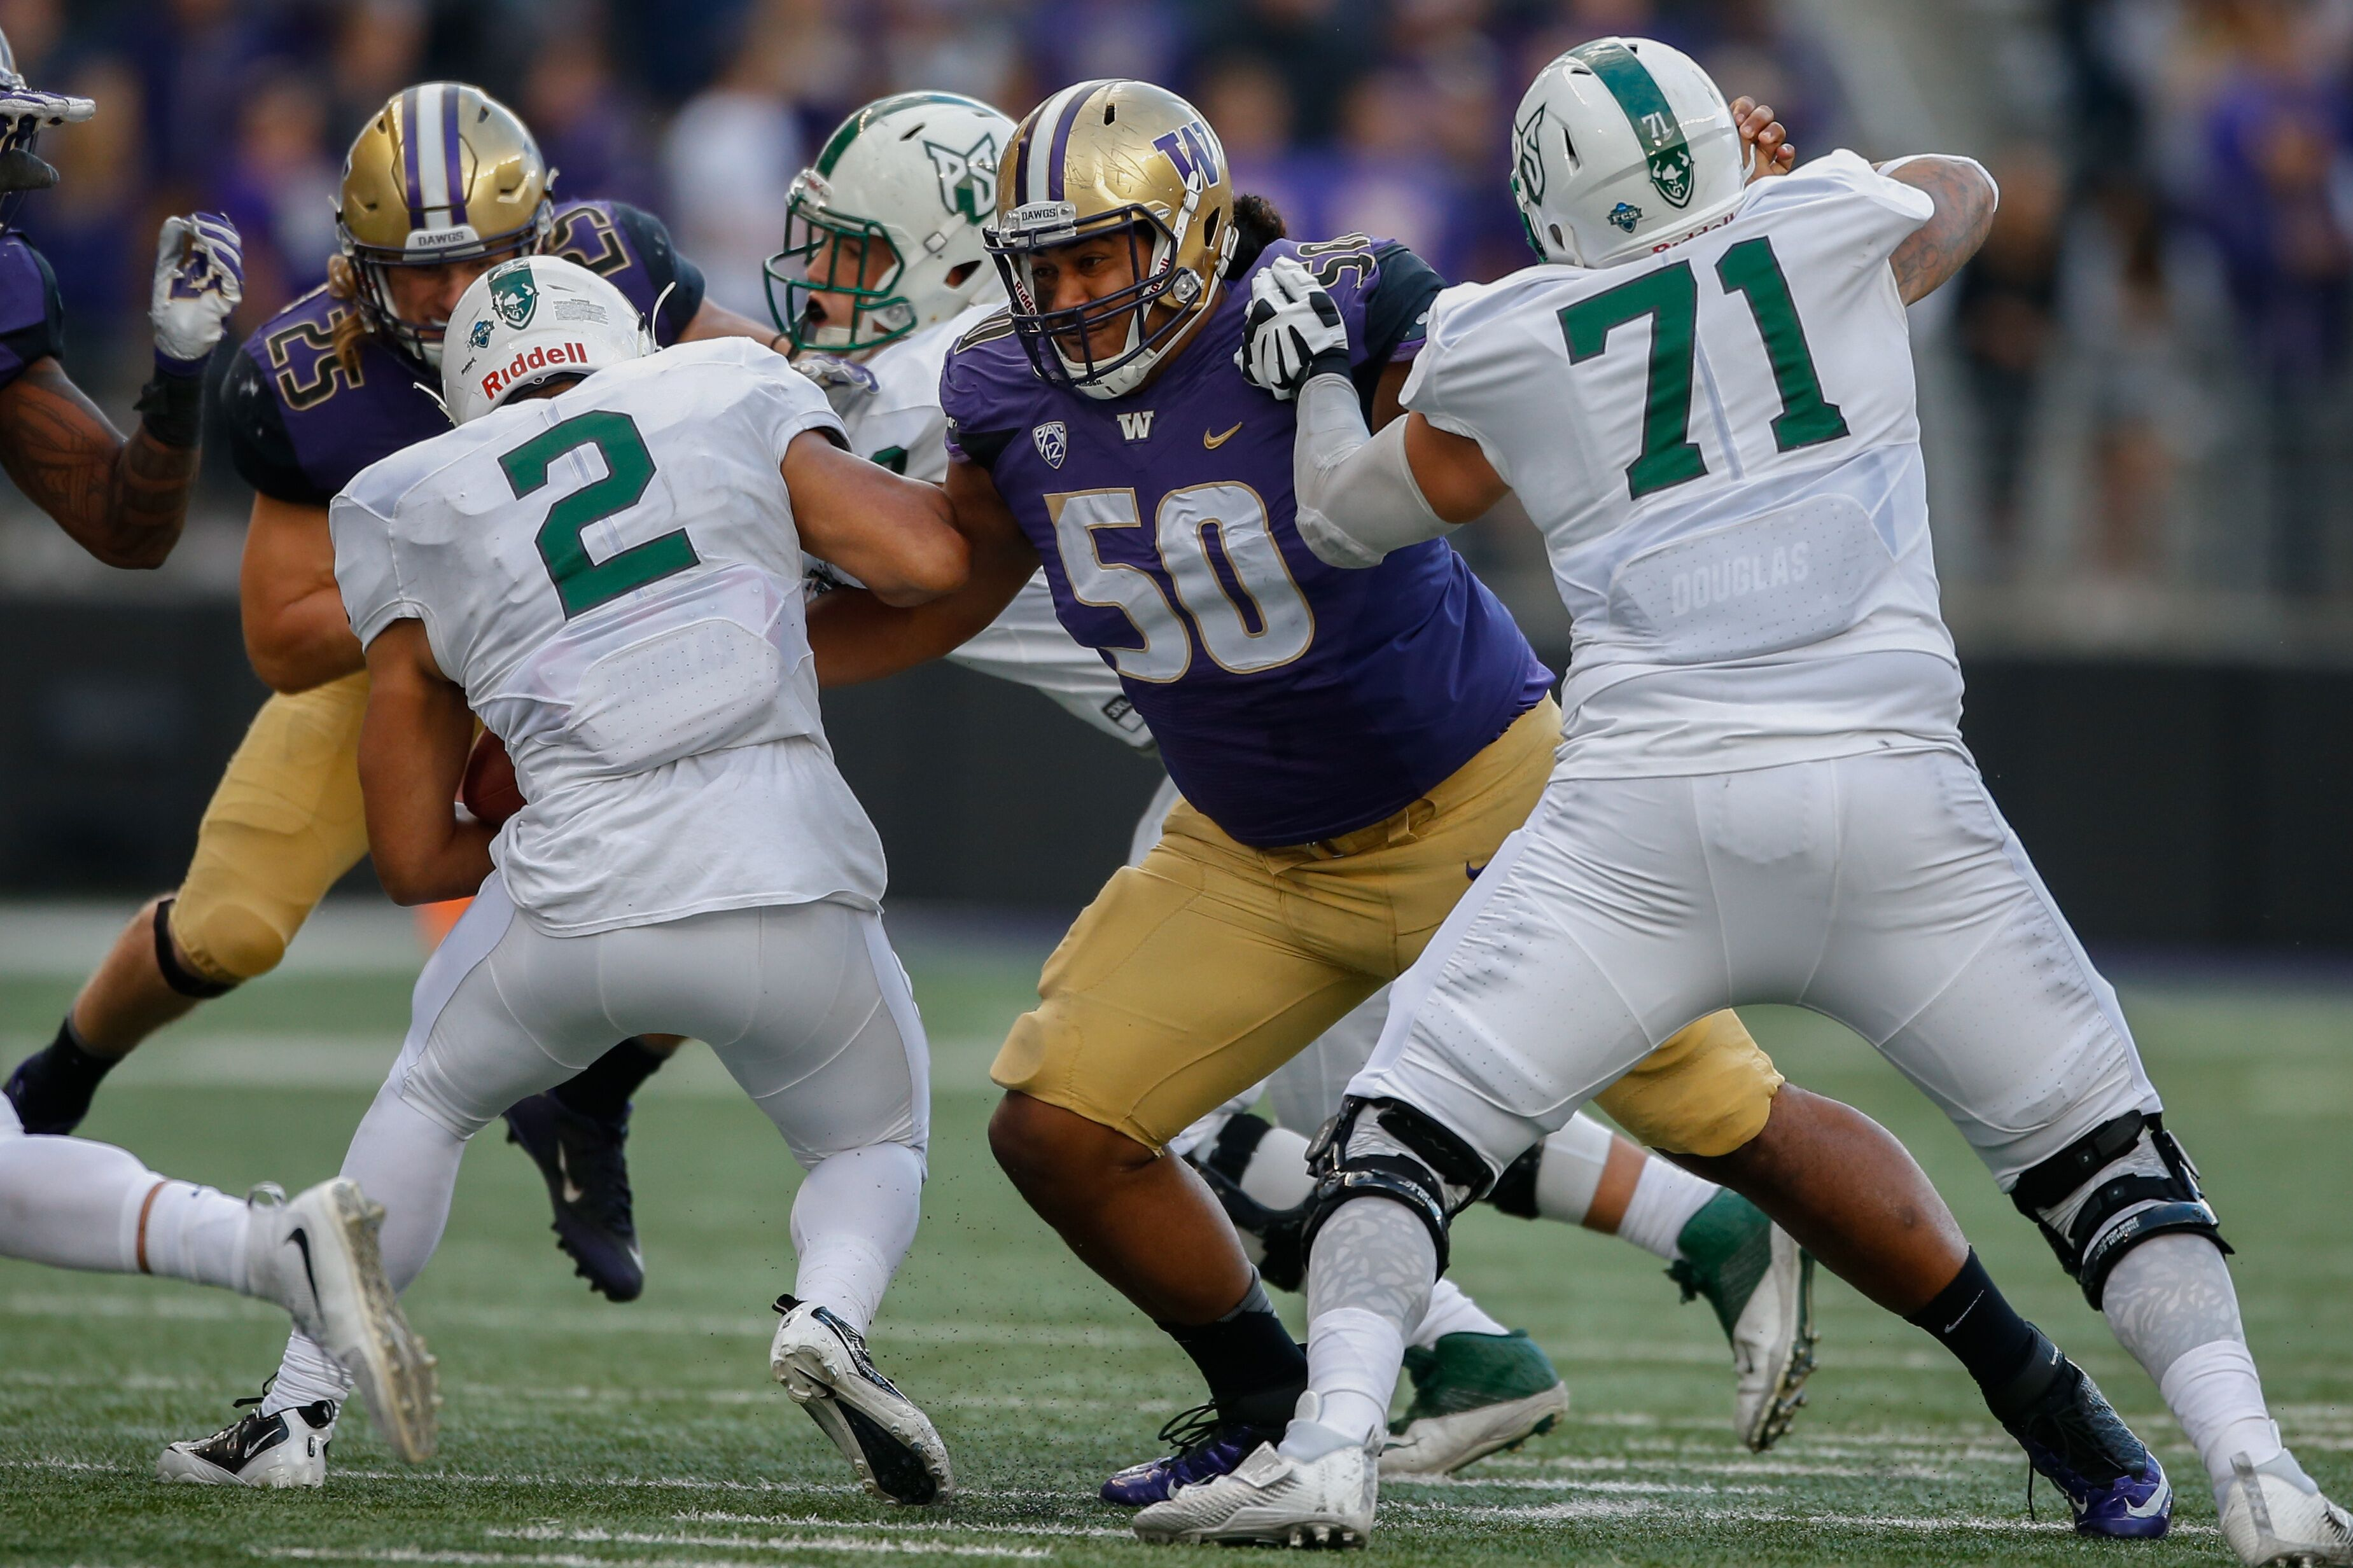 609444850-portland-state-v-washington.jpg